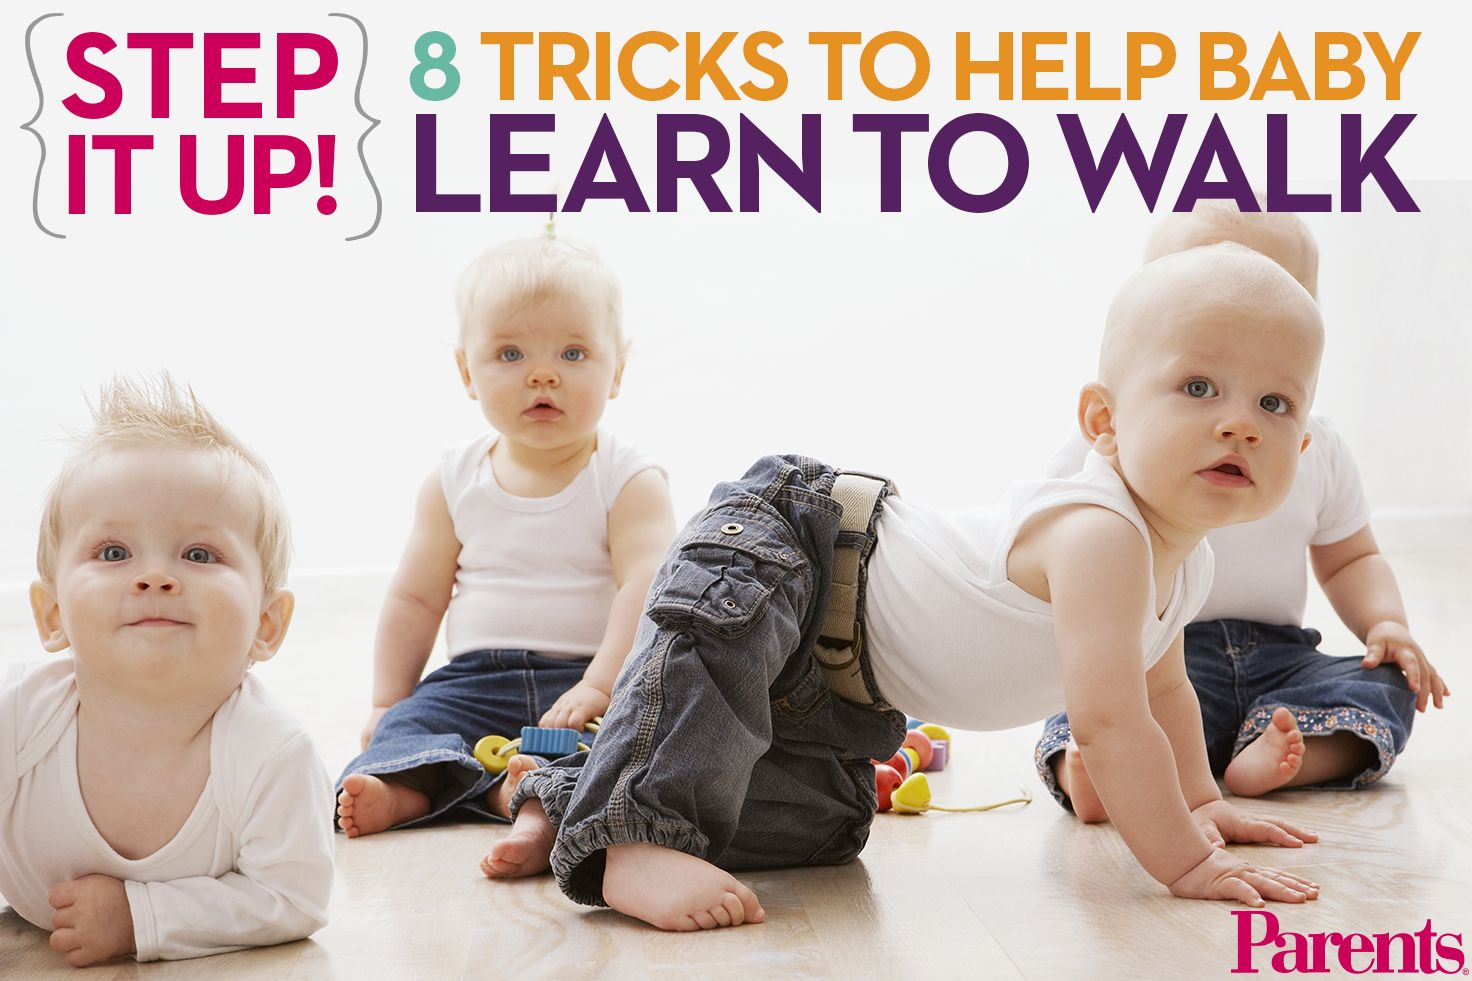 How to Teach a Baby to Crawl - wikiHow